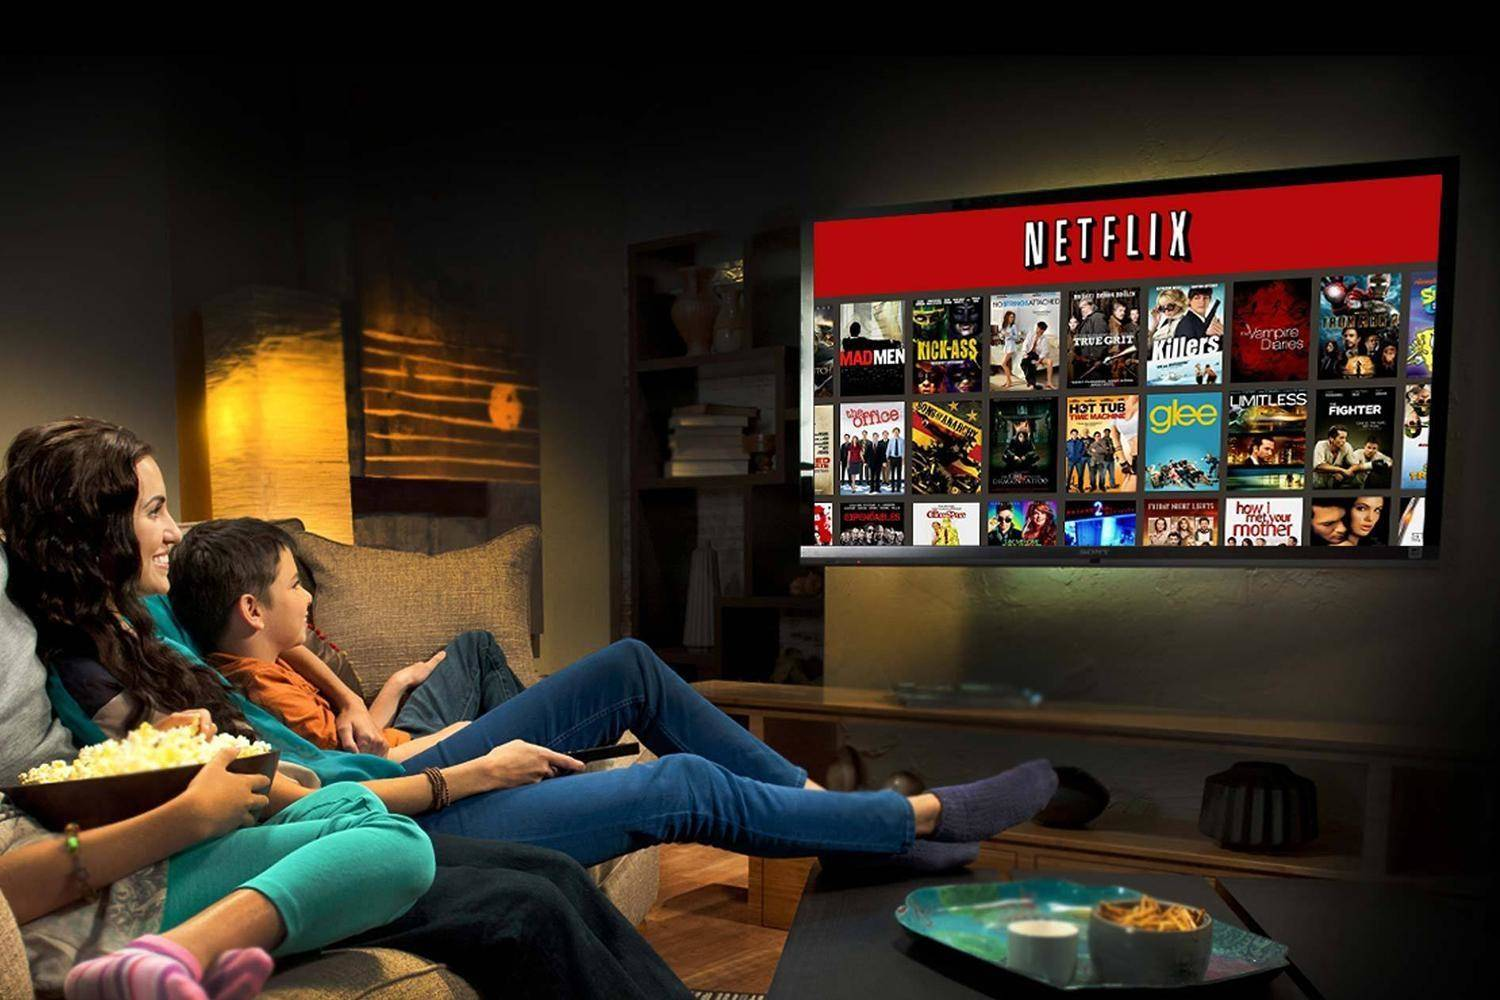 The effects of television on language skills